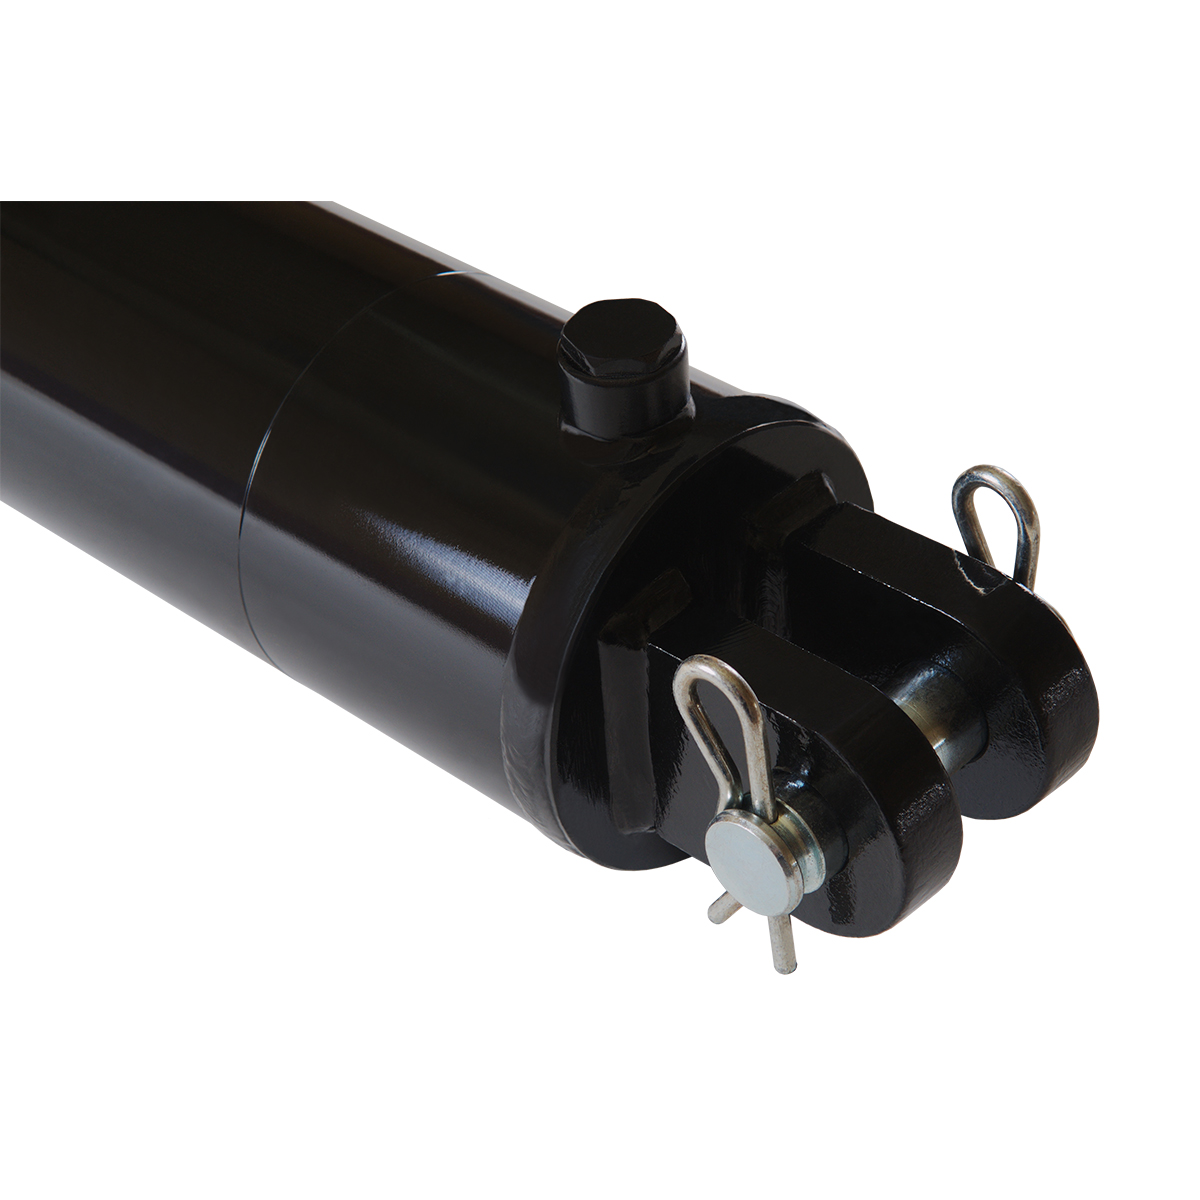 4 bore x 36 stroke hydraulic cylinder, welded clevis double acting cylinder | Magister Hydraulics